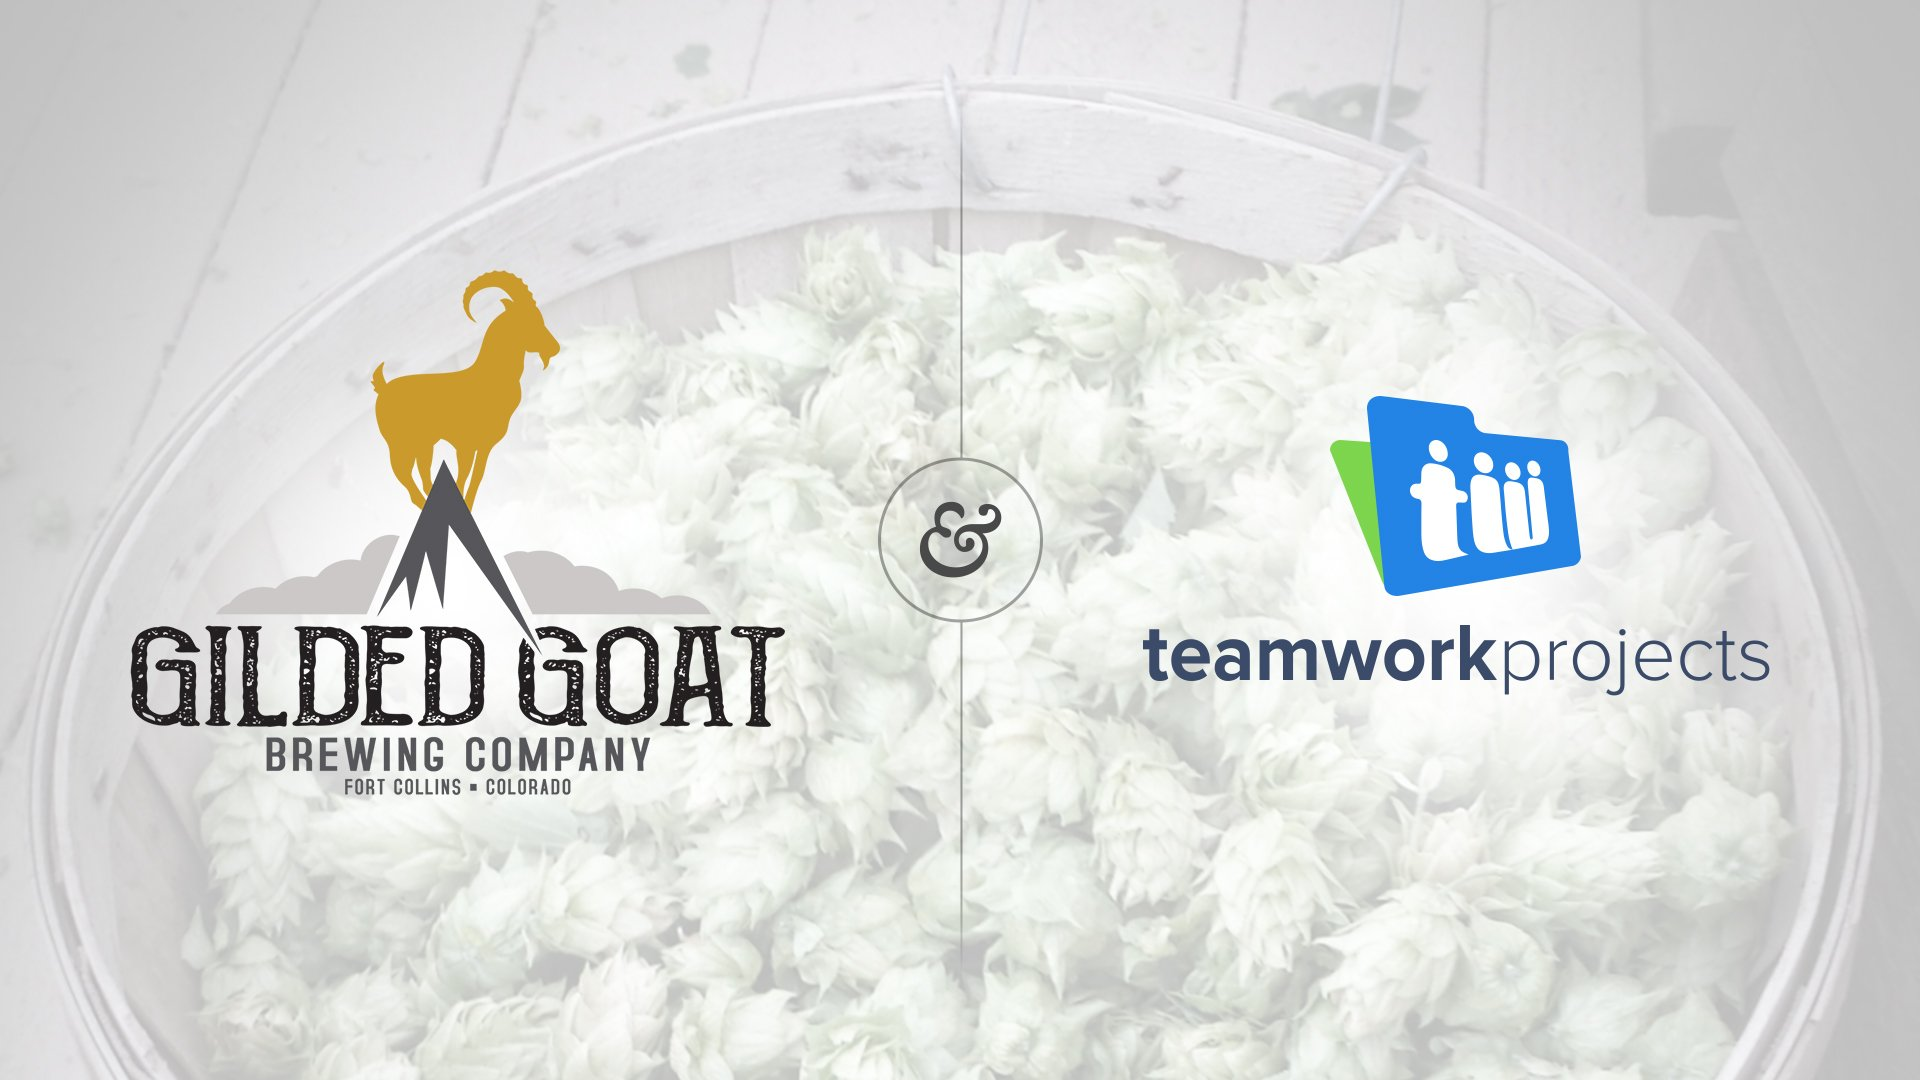 How Gilded Goat Brewing Company uses Teamwork Projects | Teamwork.com High Performance Blog